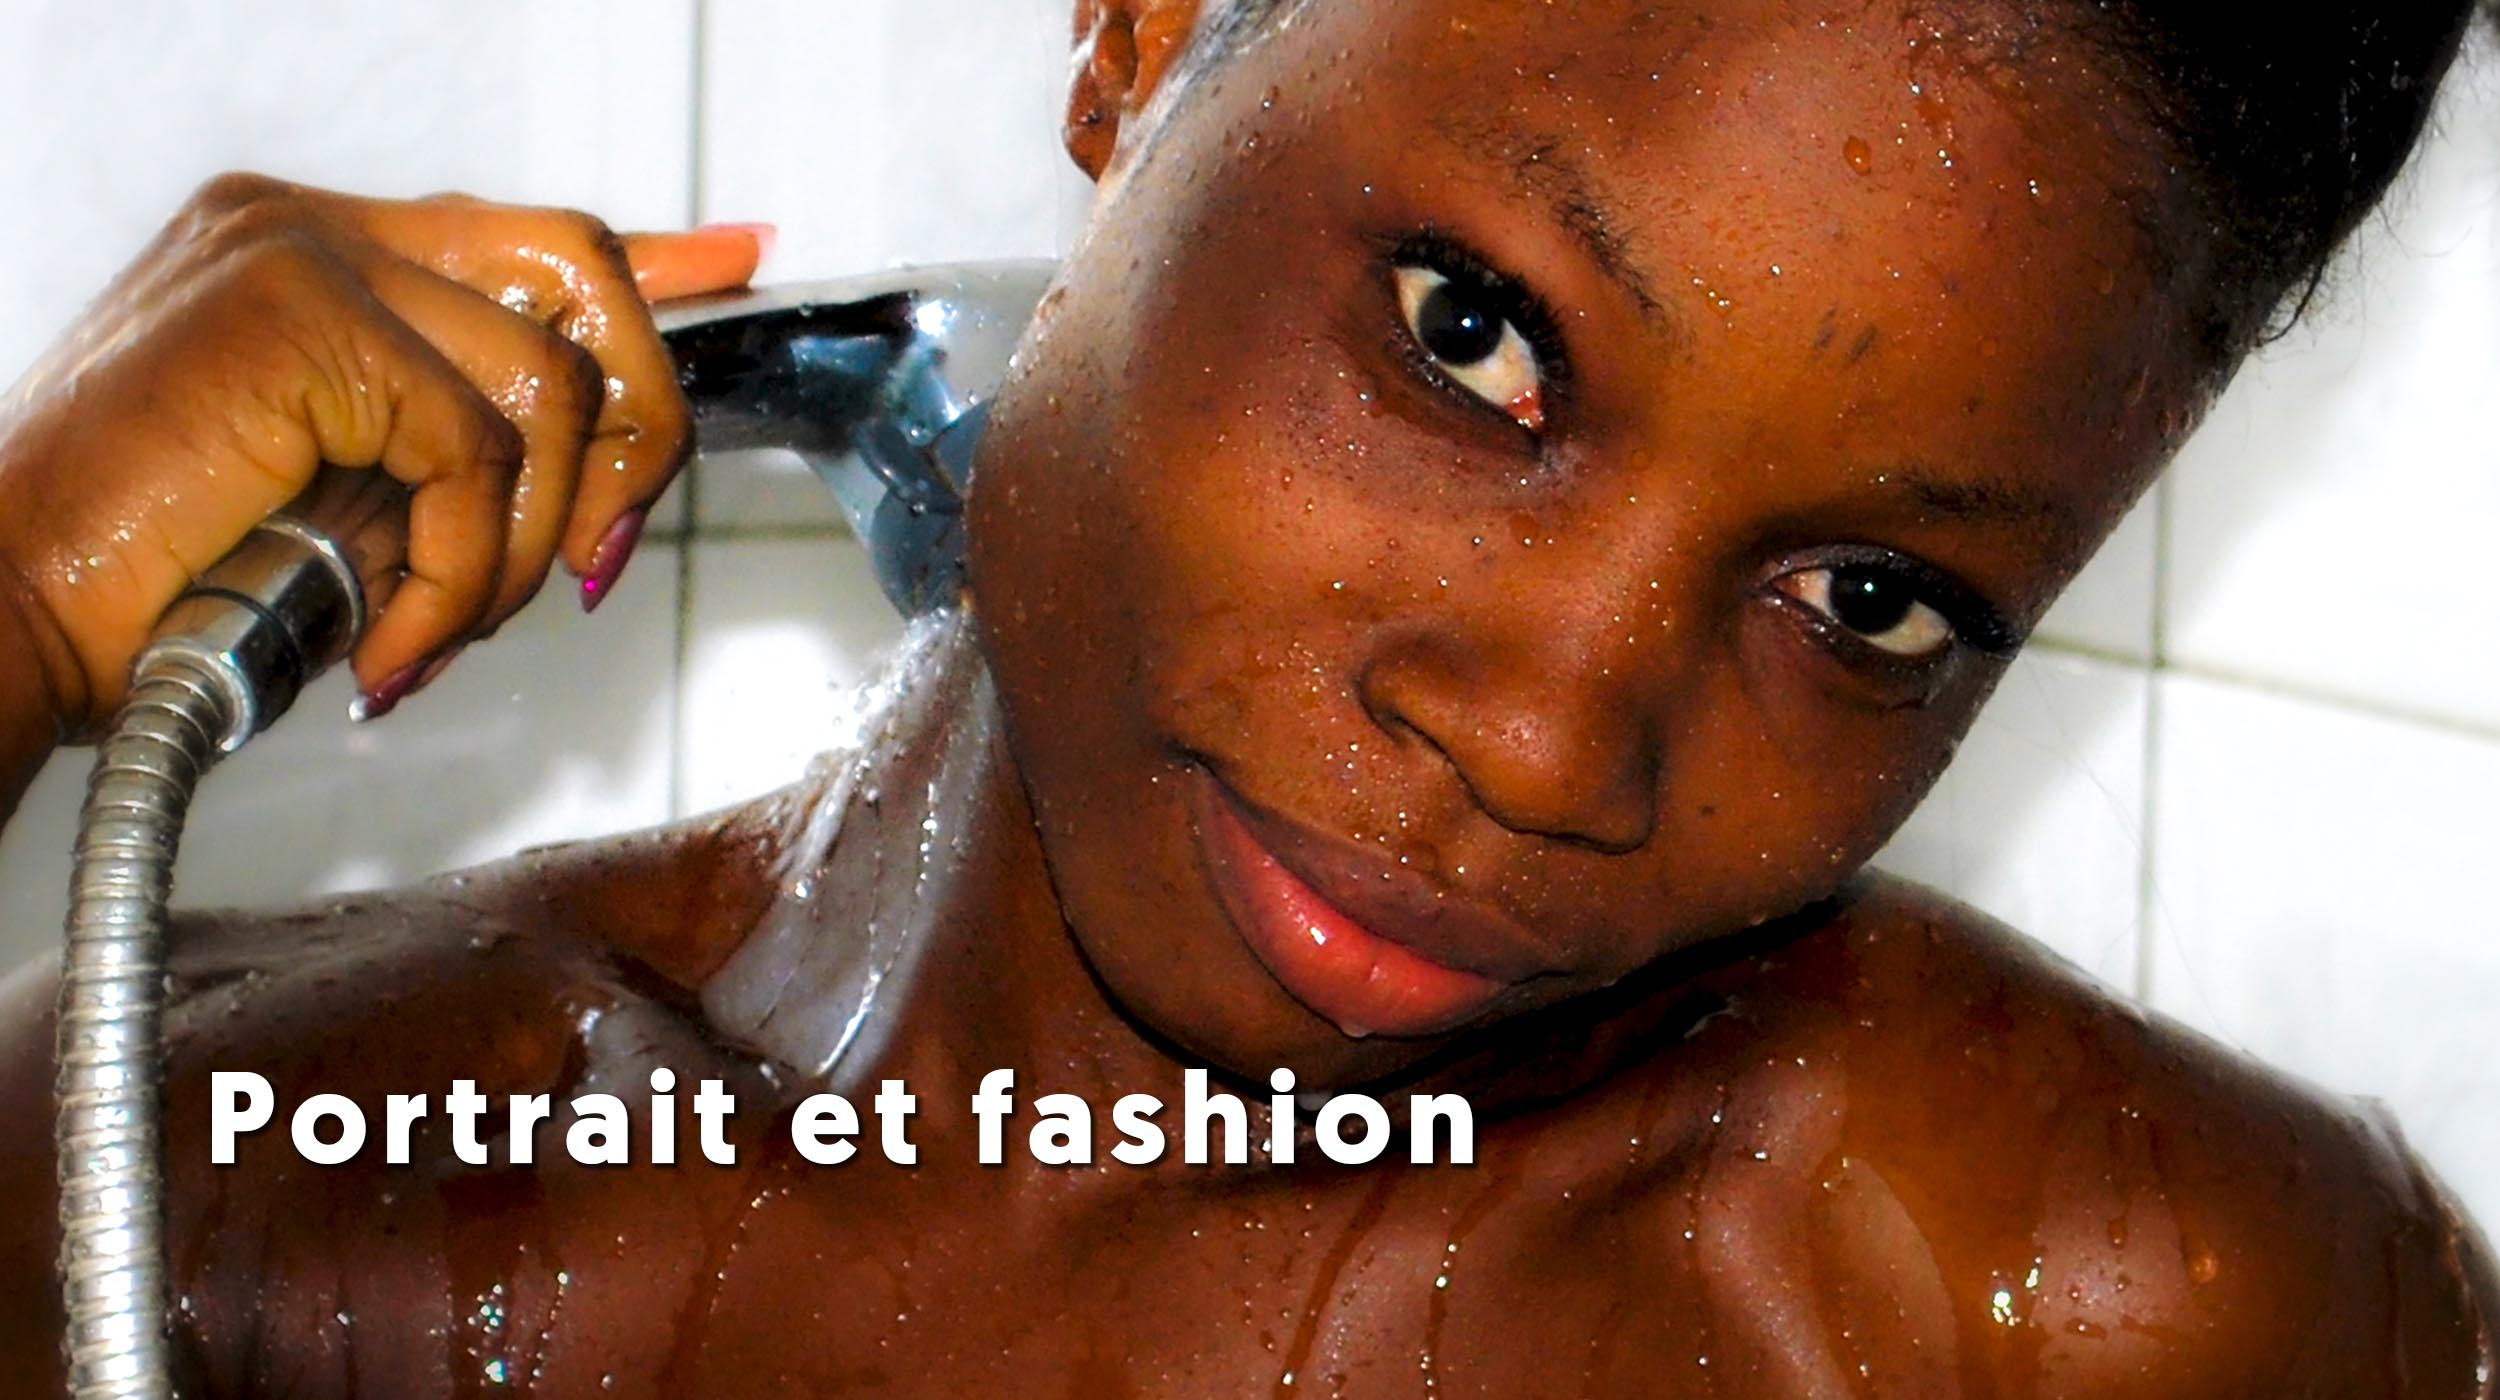 photographe-de-mode-de-portrait-africaine-douche-morbihan